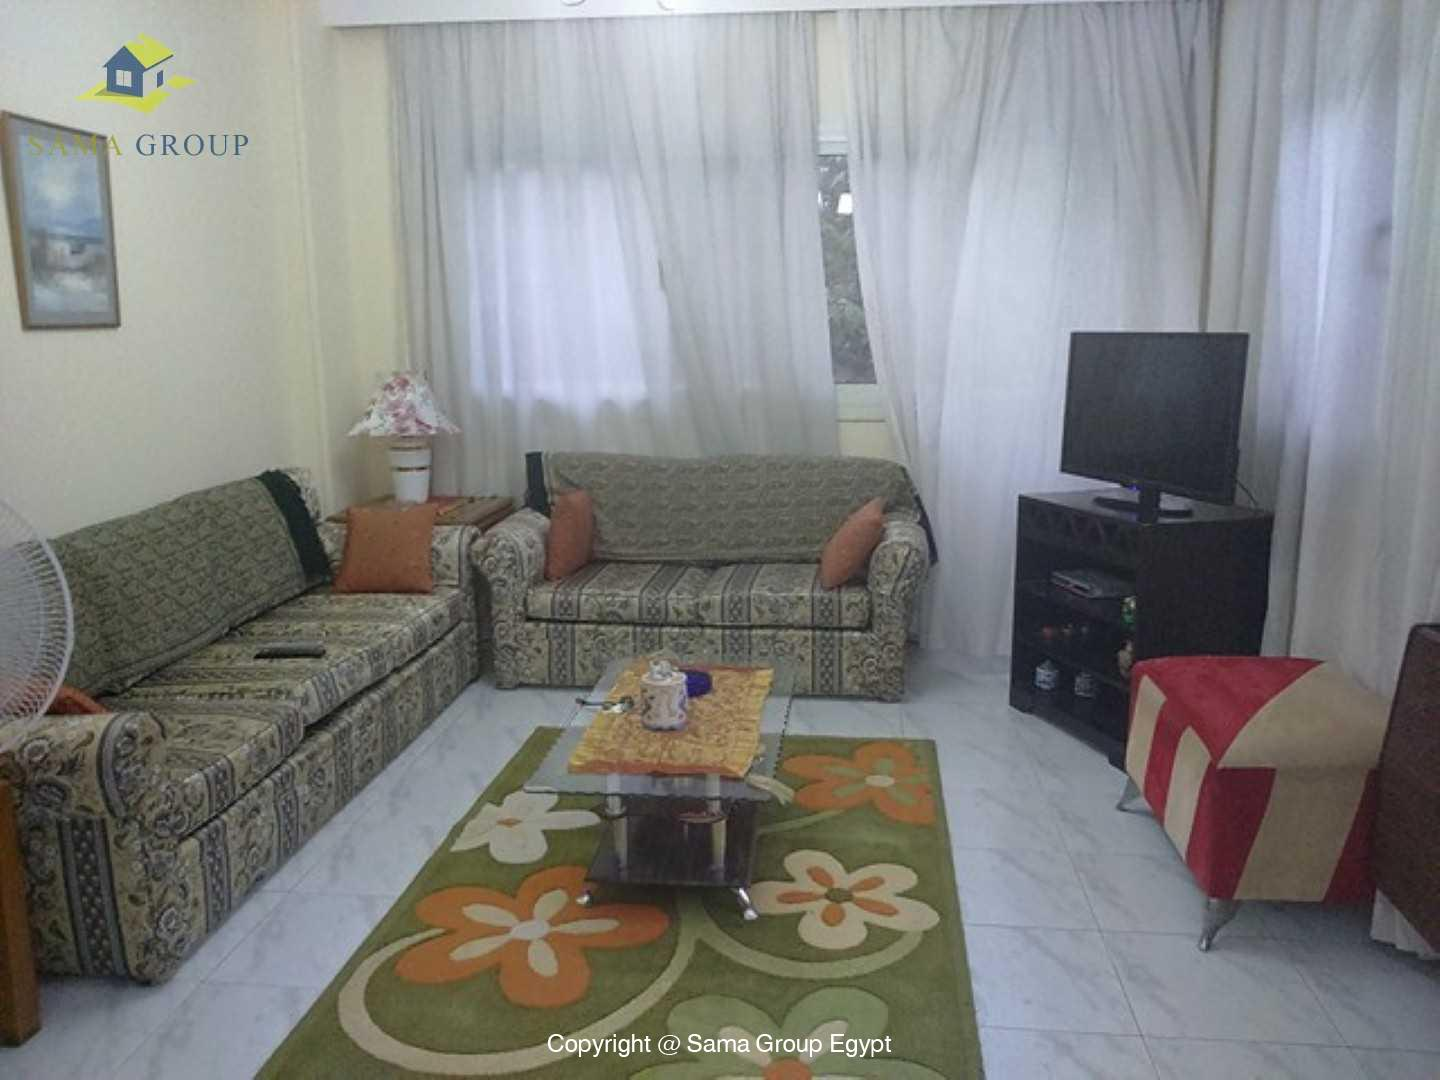 Furnished Apartment With Open View For Rent In Maadi,Furnished,Apartment NO #11